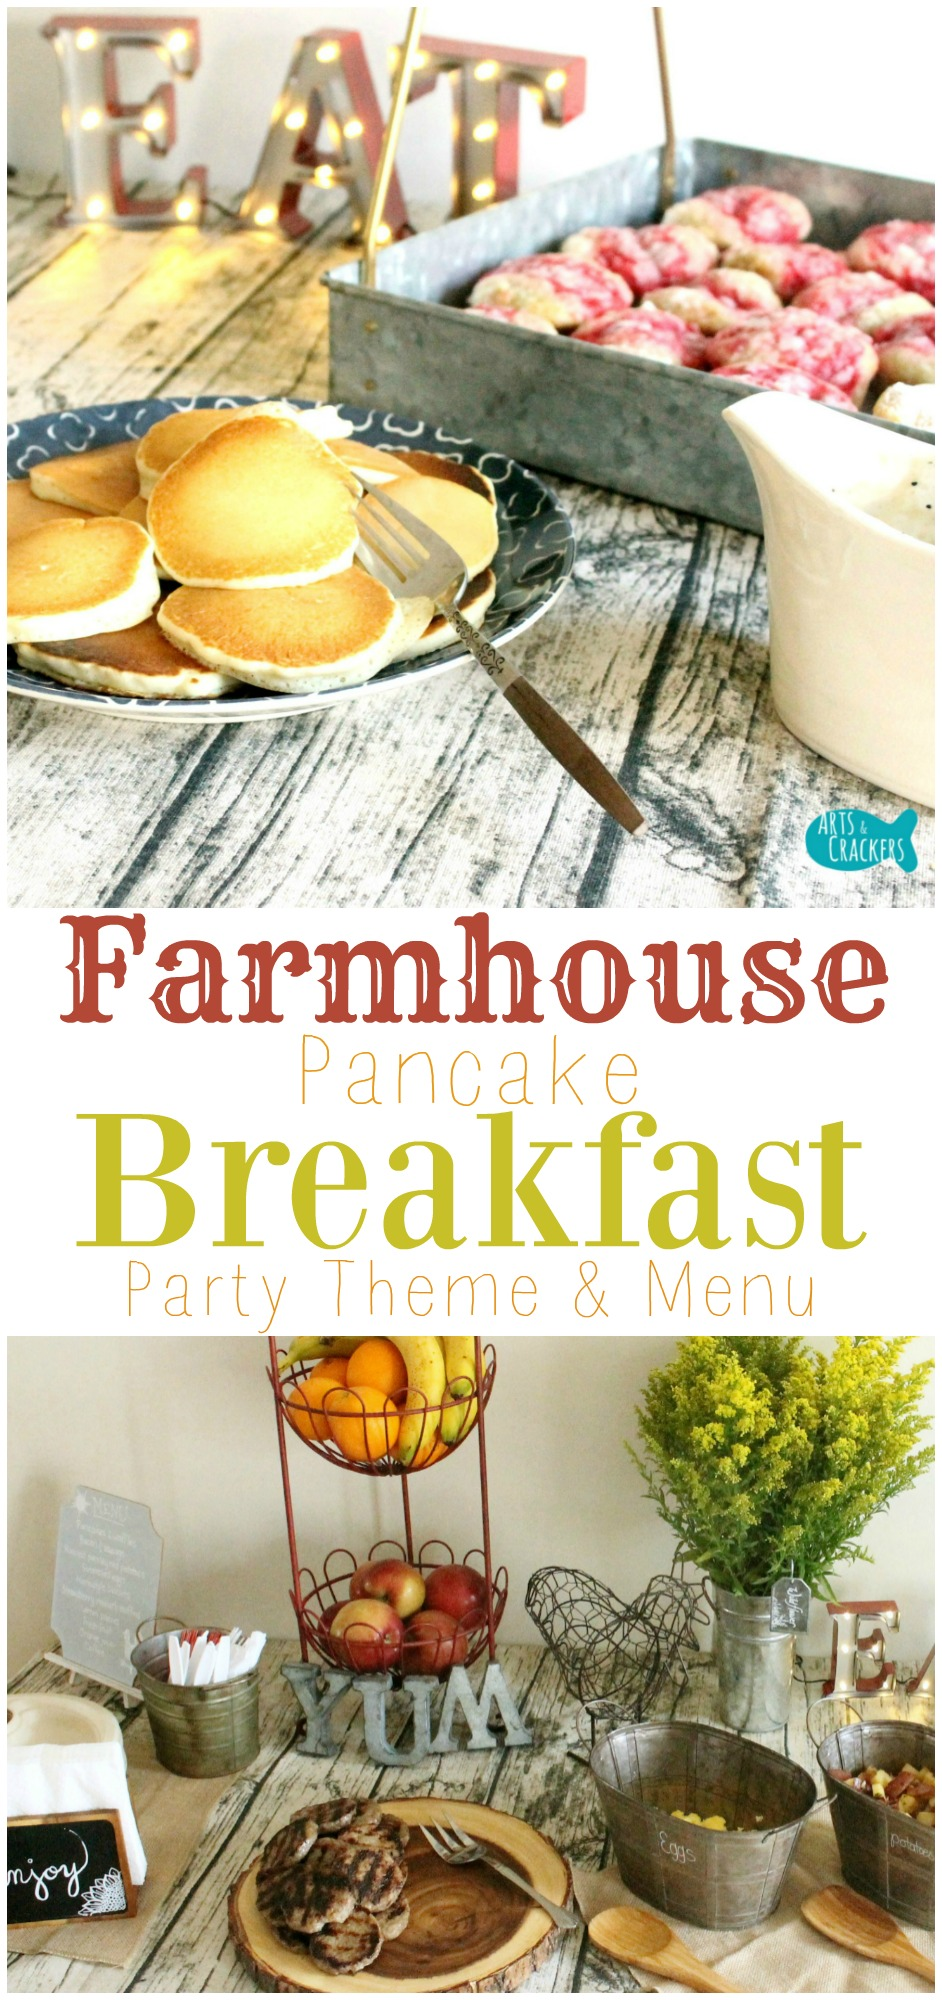 Visit Our Farmhouse Pancake Breakfast Party Complete With Country Chic Decorations And A Delicious Feast